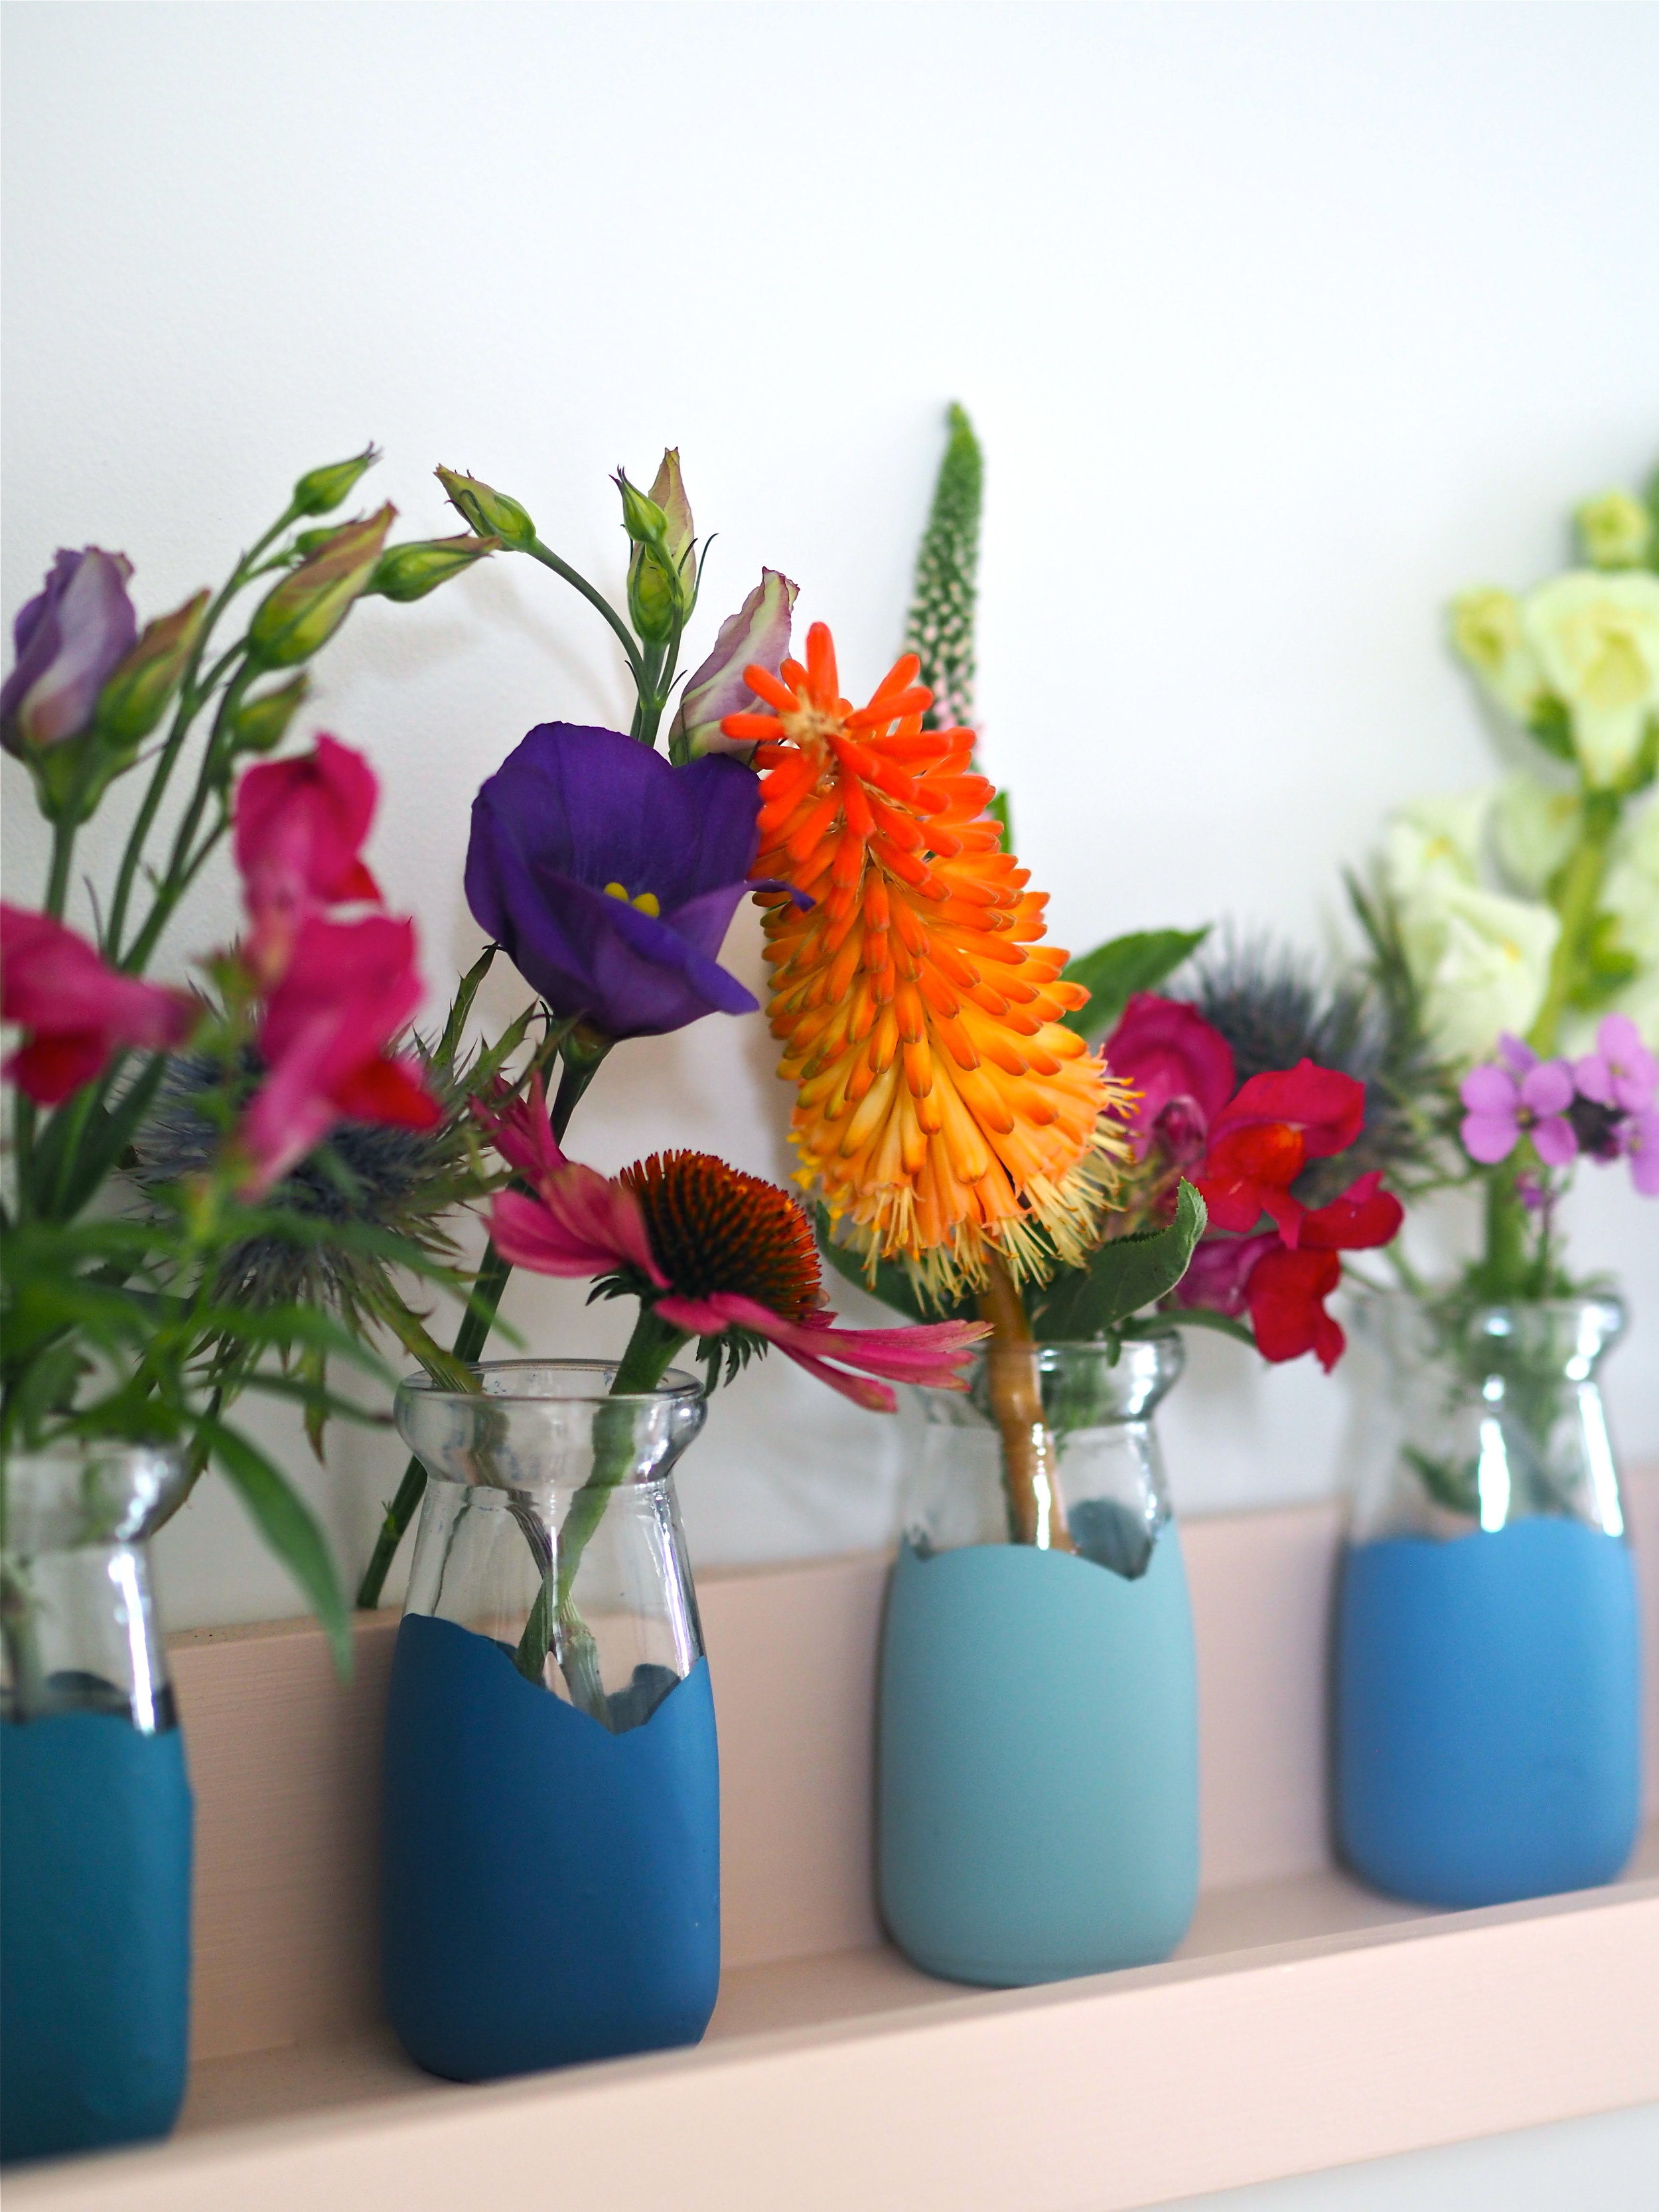 A collection of milk bottles dipped in blue shades by M&L Paints.